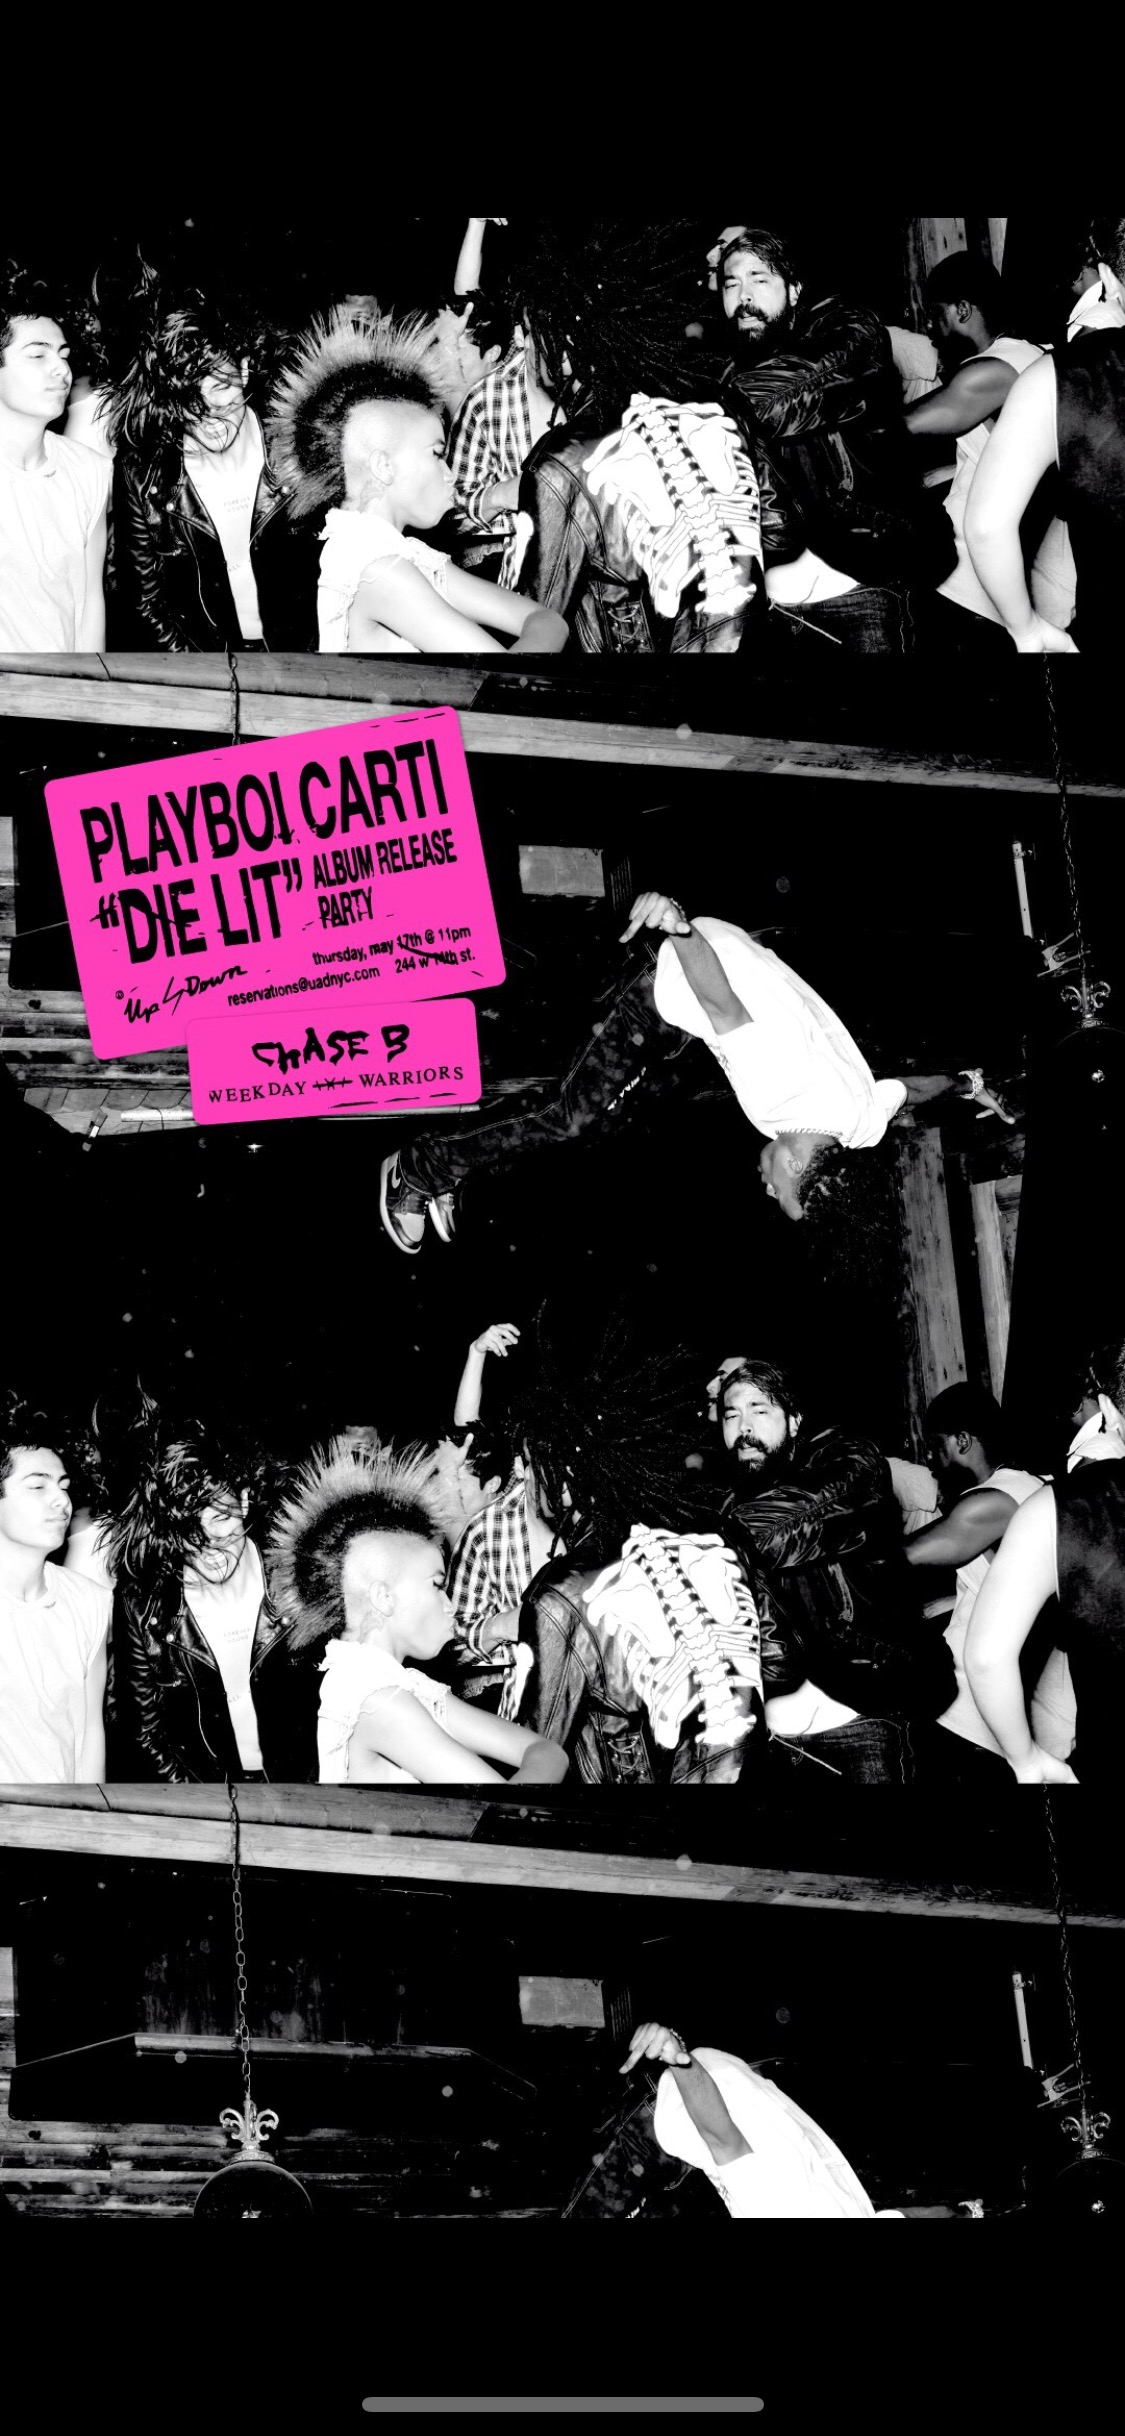 Playboi Carti Album Release Party at Up & Down — Vanity Events